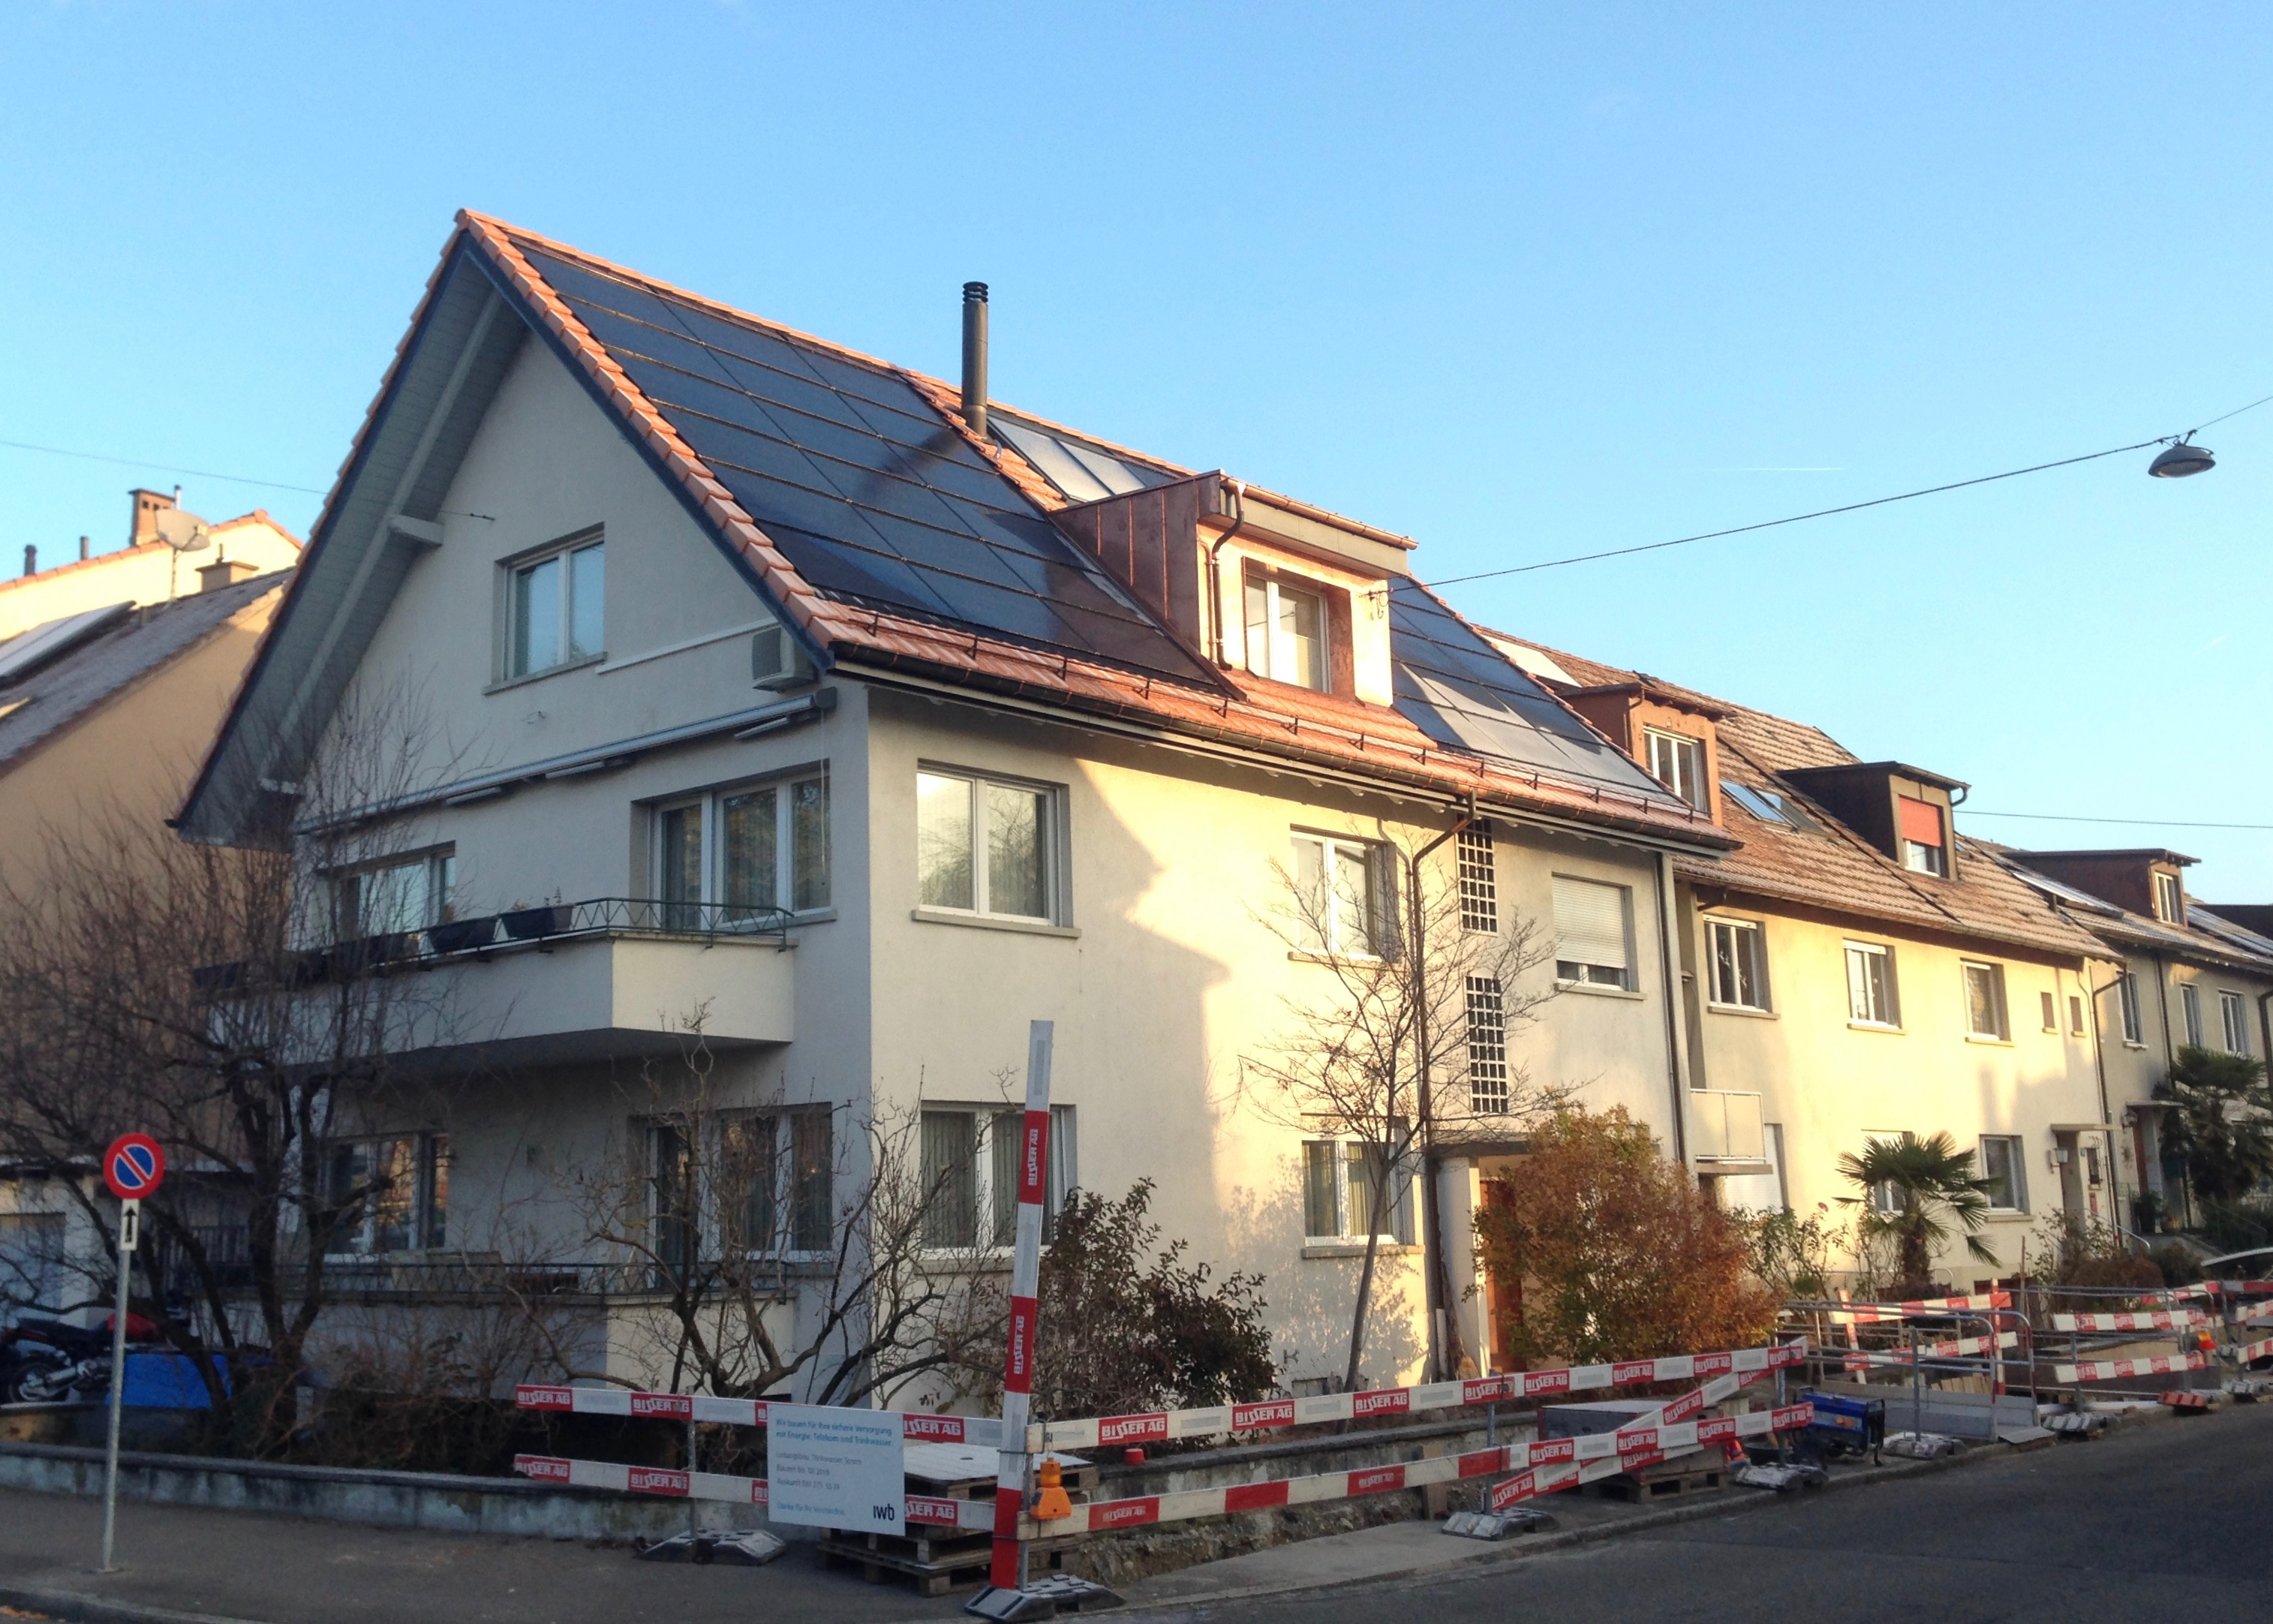 10.62 kWp Indach – 4054 Basel